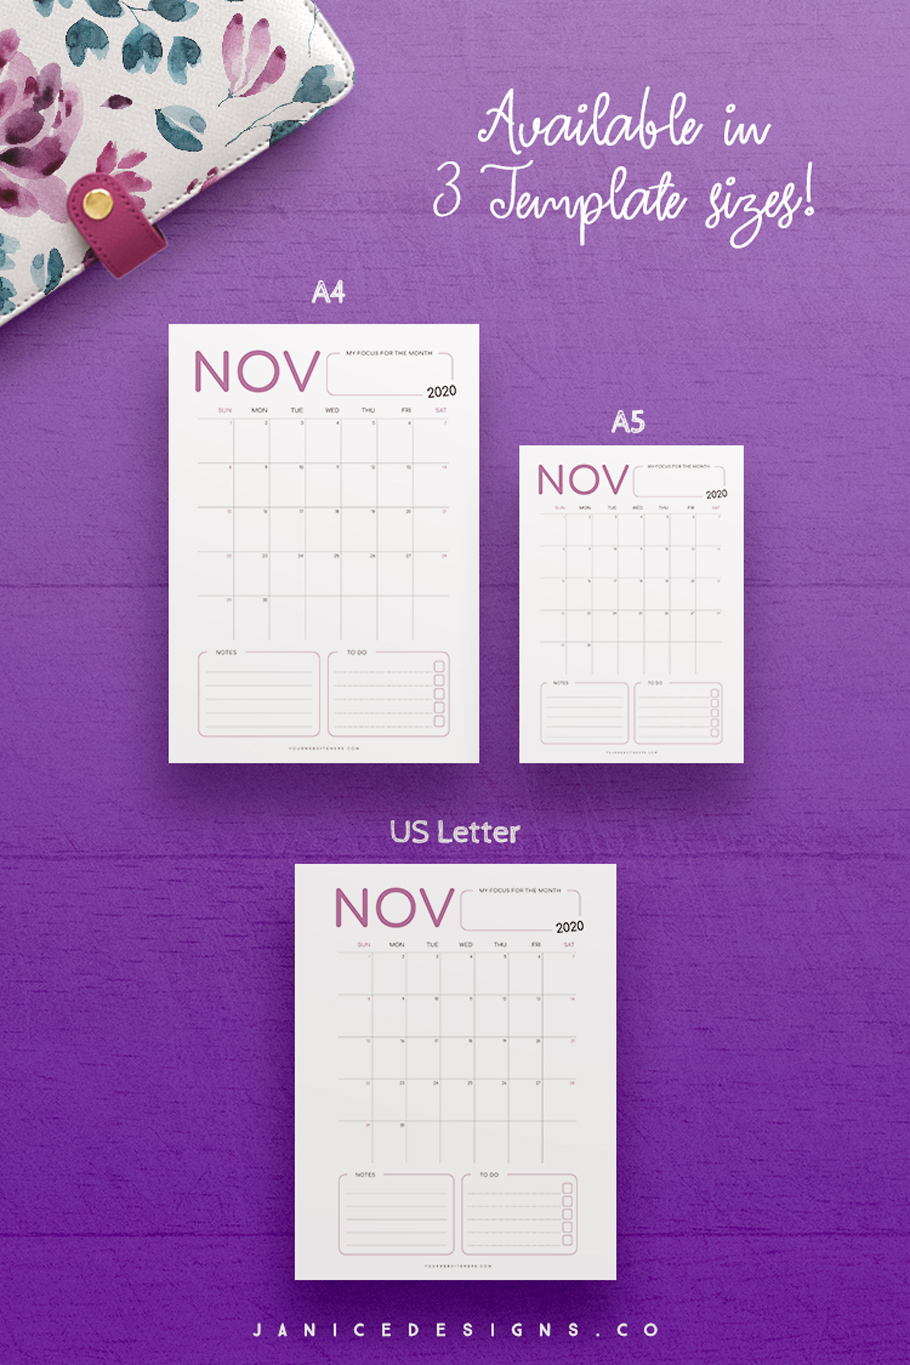 2020 Calendar InDesign Template for Commercial Use example image 5